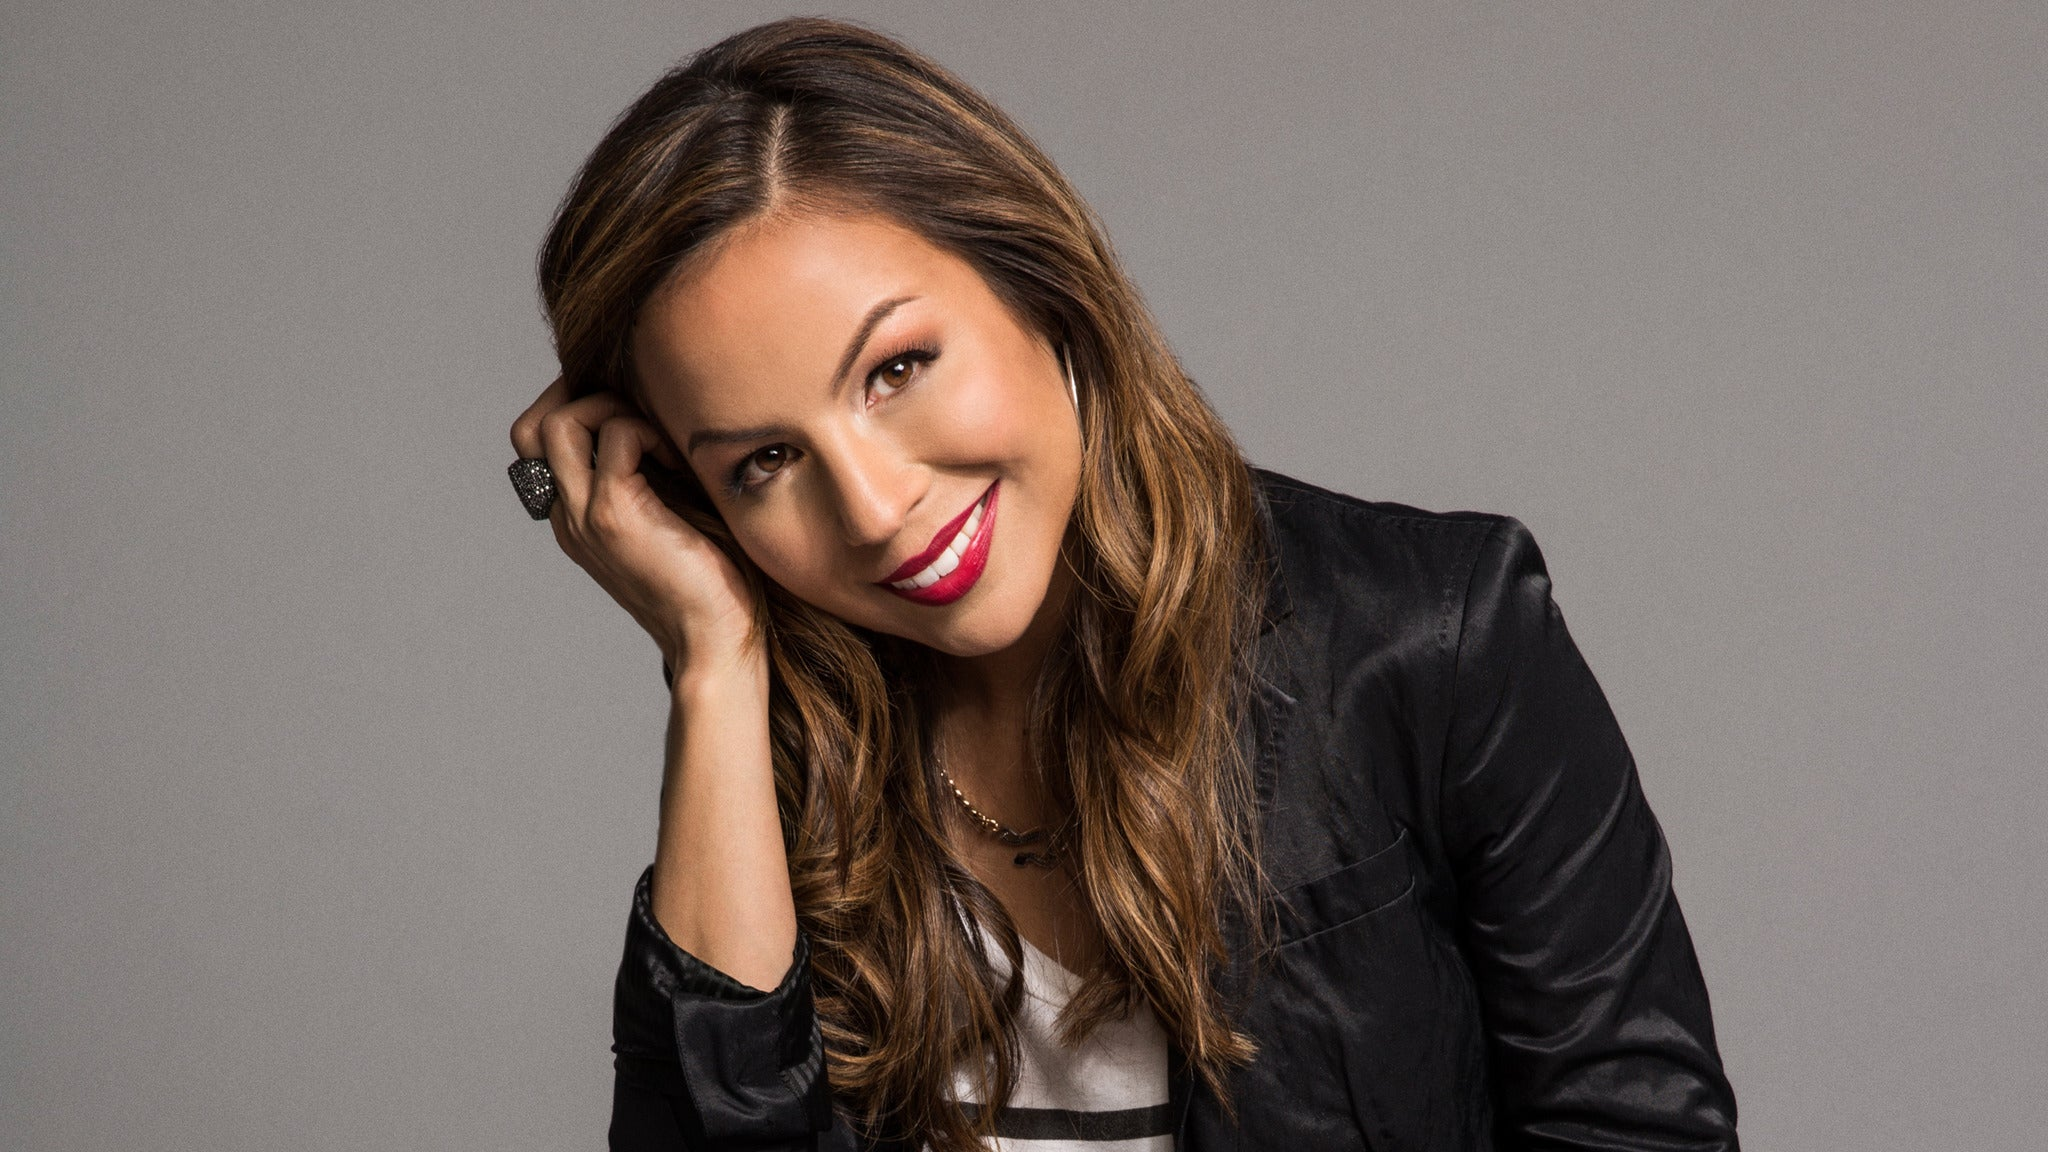 Anjelah Johnson at Brea Improv - Brea, CA 92821